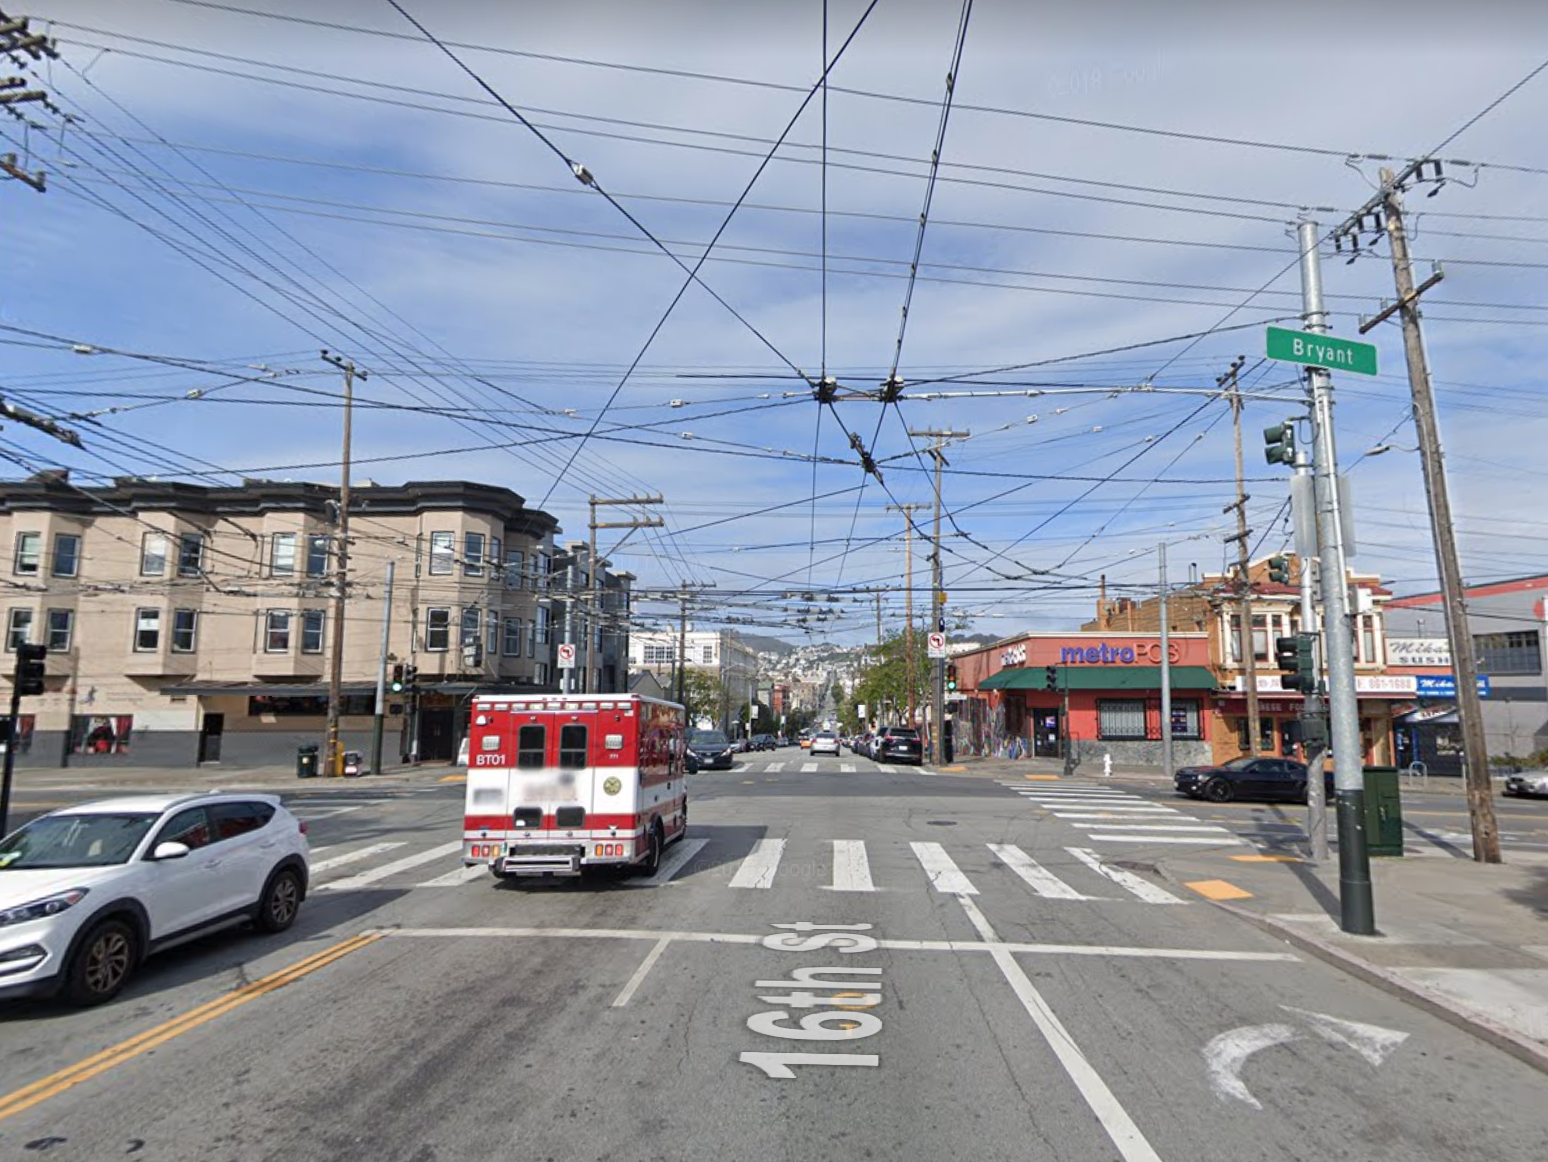 Hit-and-run near Franklin Square leaves pedestrian with life-threatening injuries